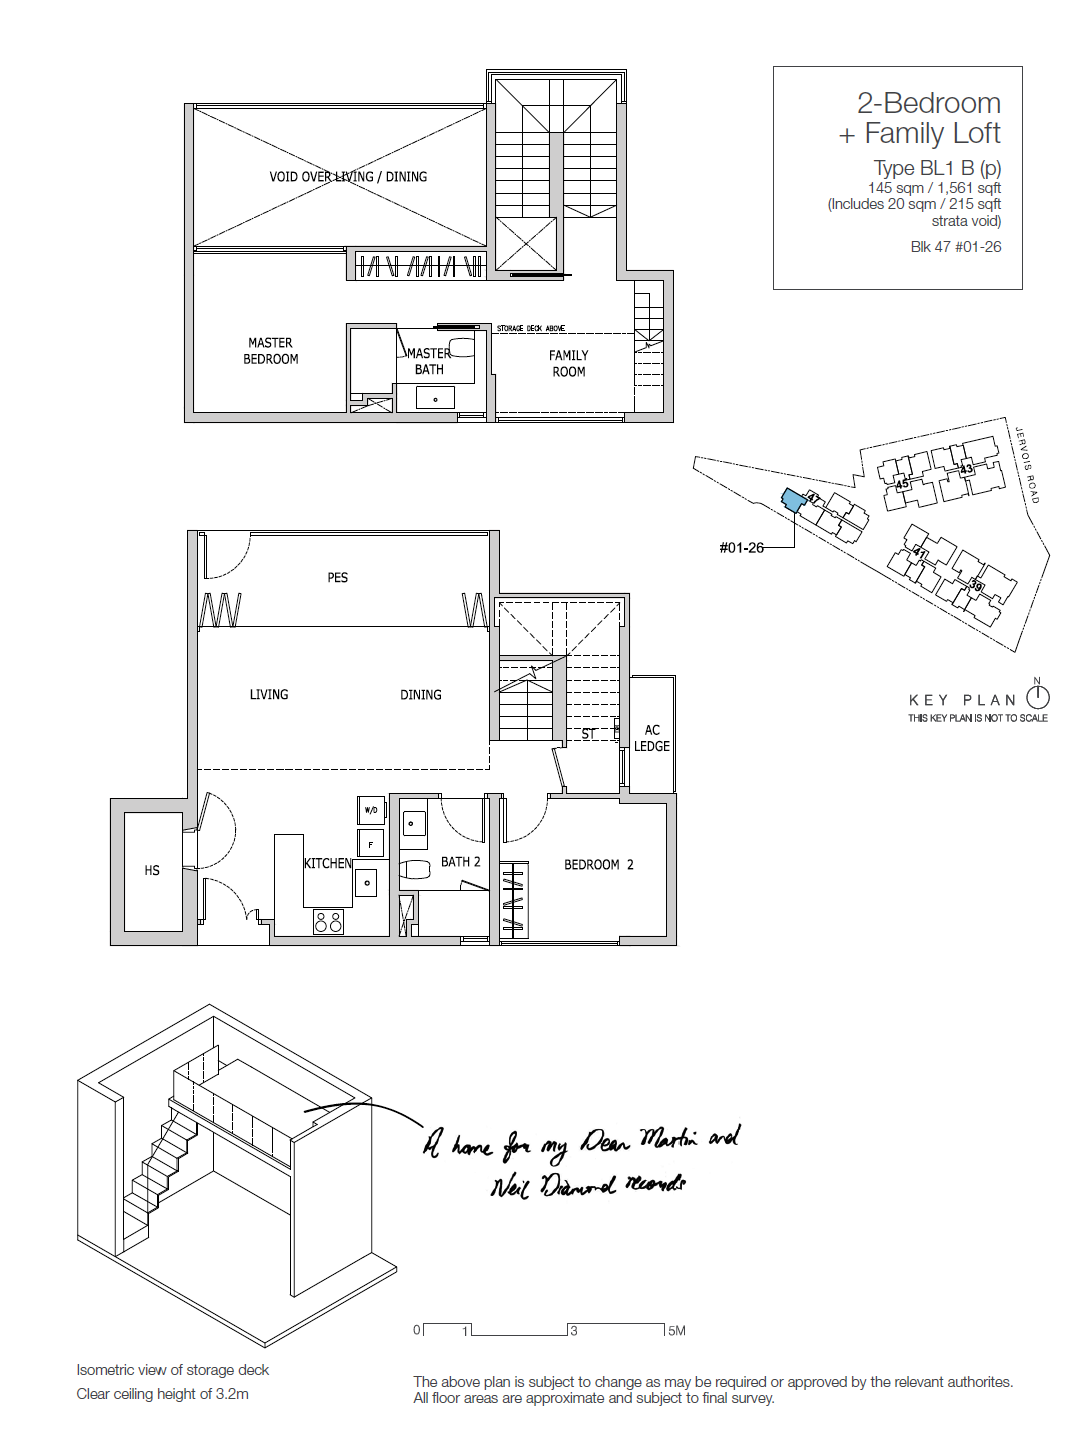 Type BL1A - 2 Bedroom + Family Loft